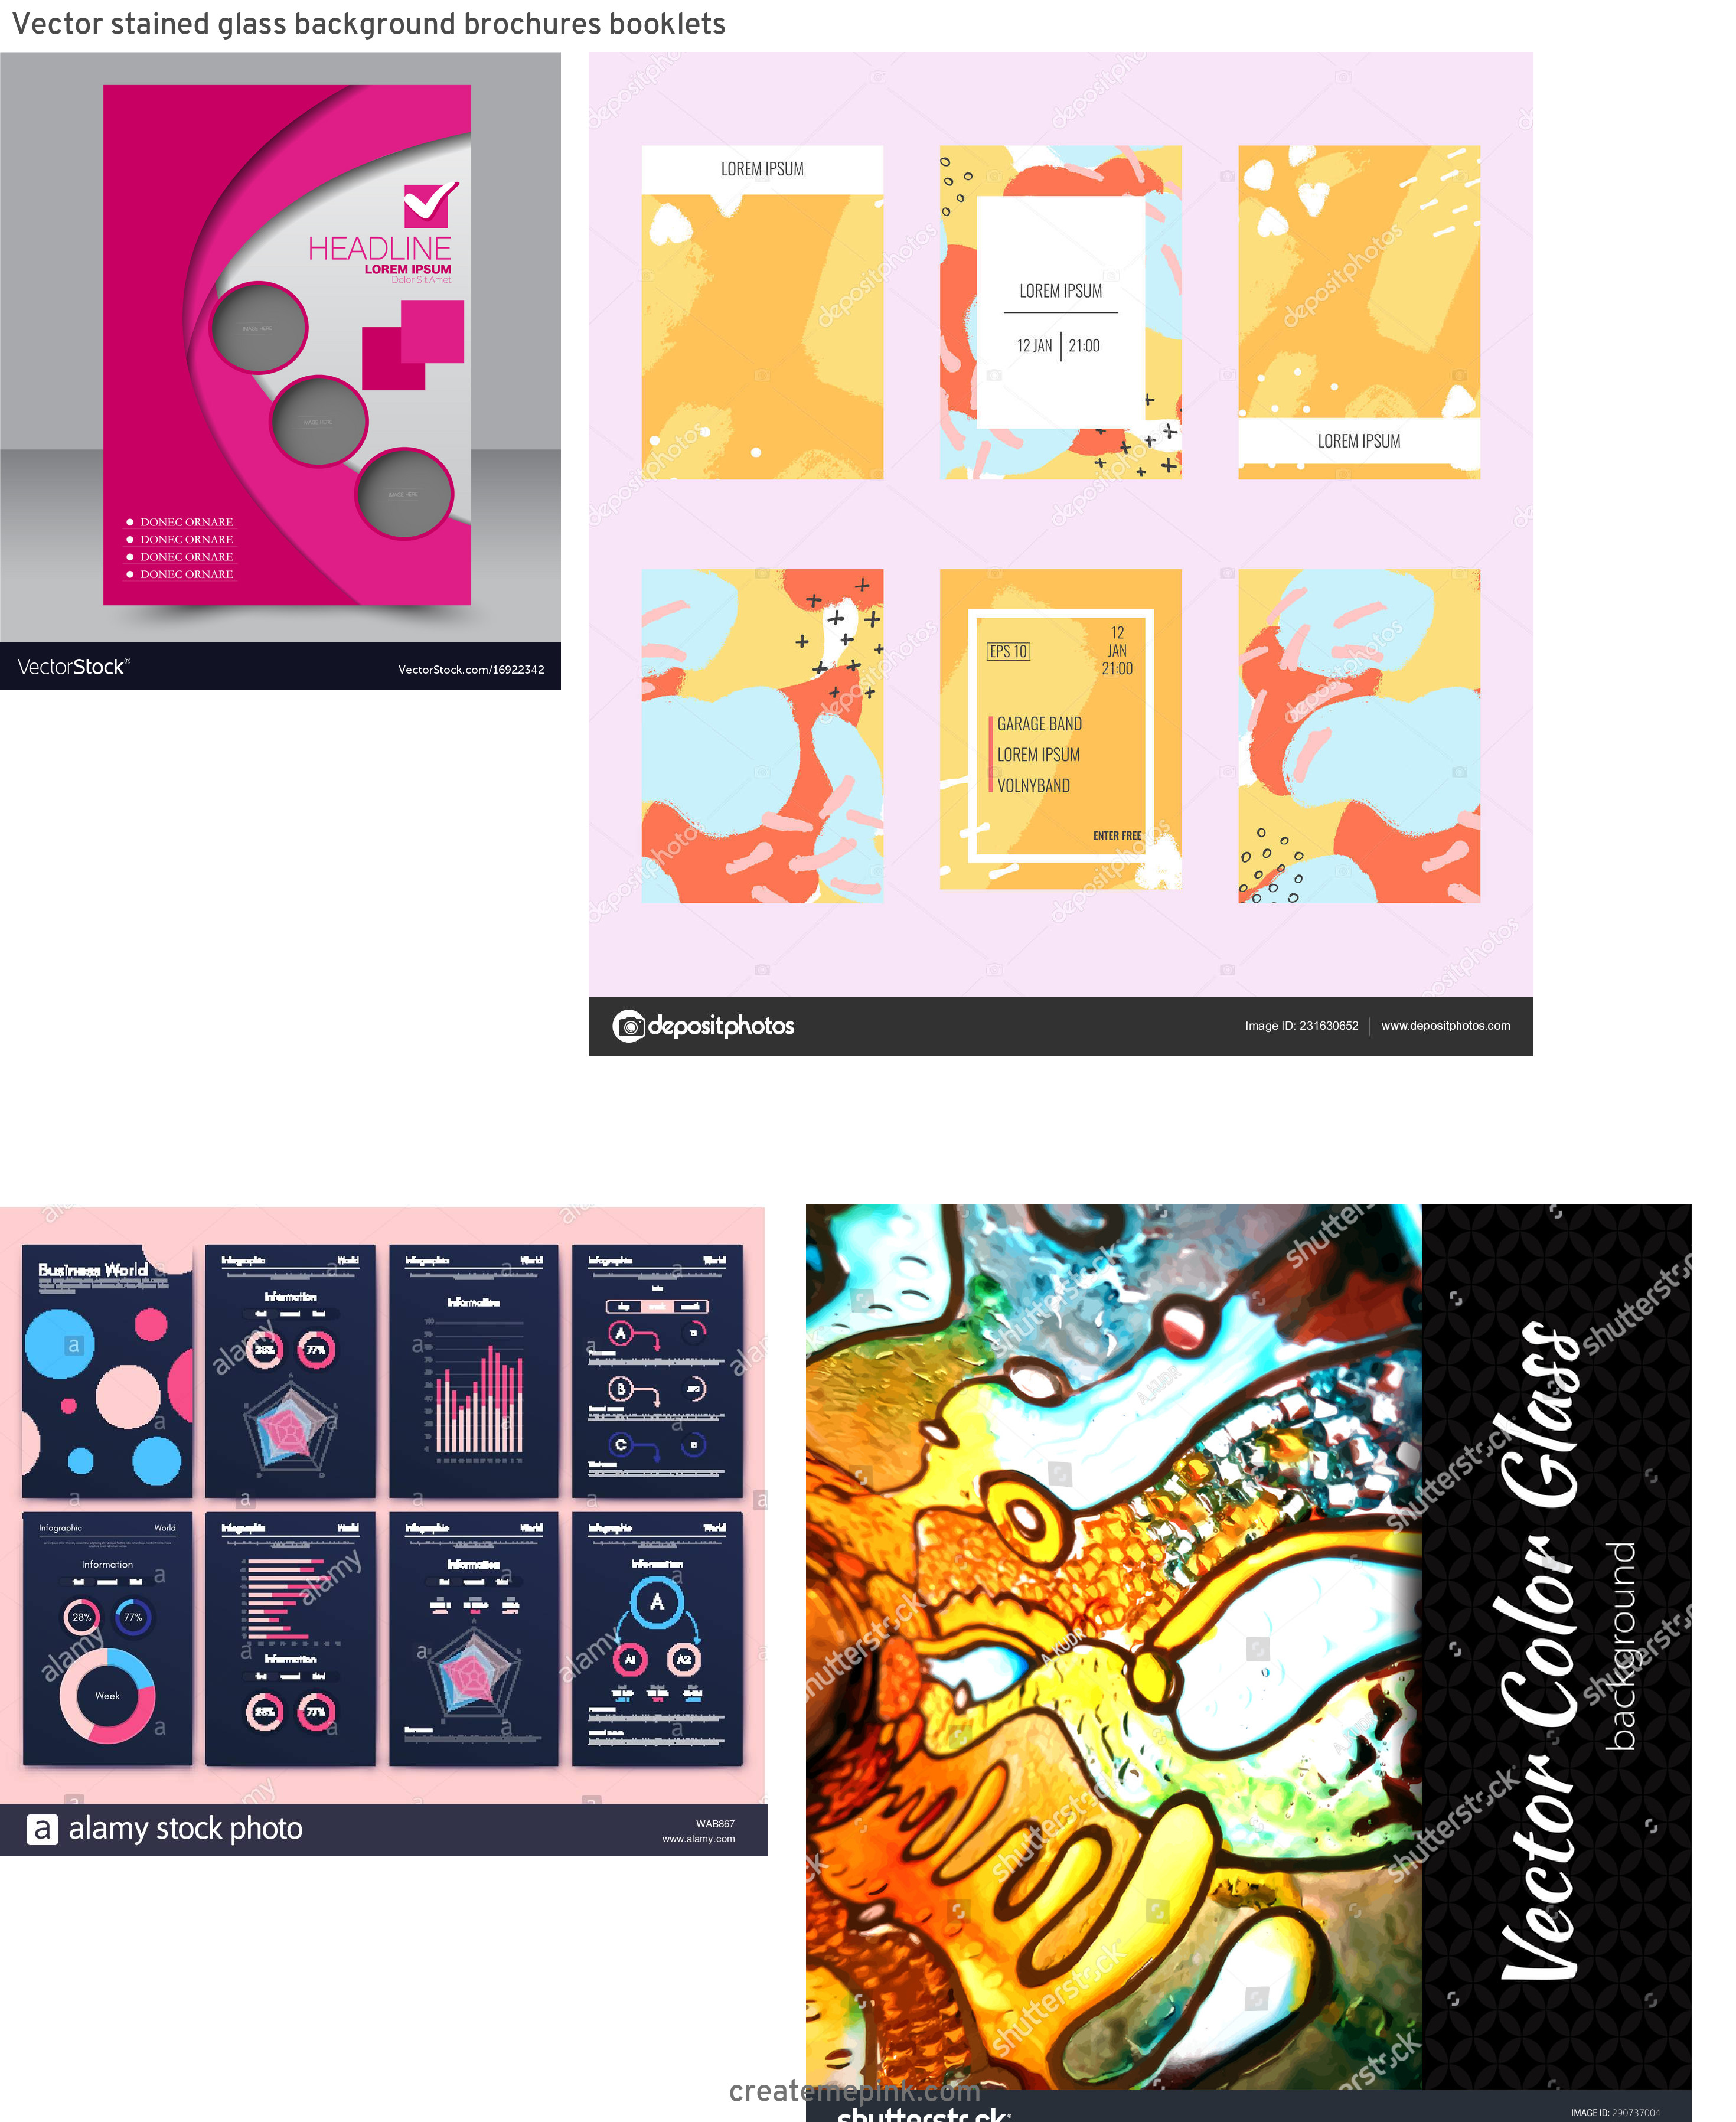 Vector Art For Brochures: Vector Stained Glass Background Brochures Booklets